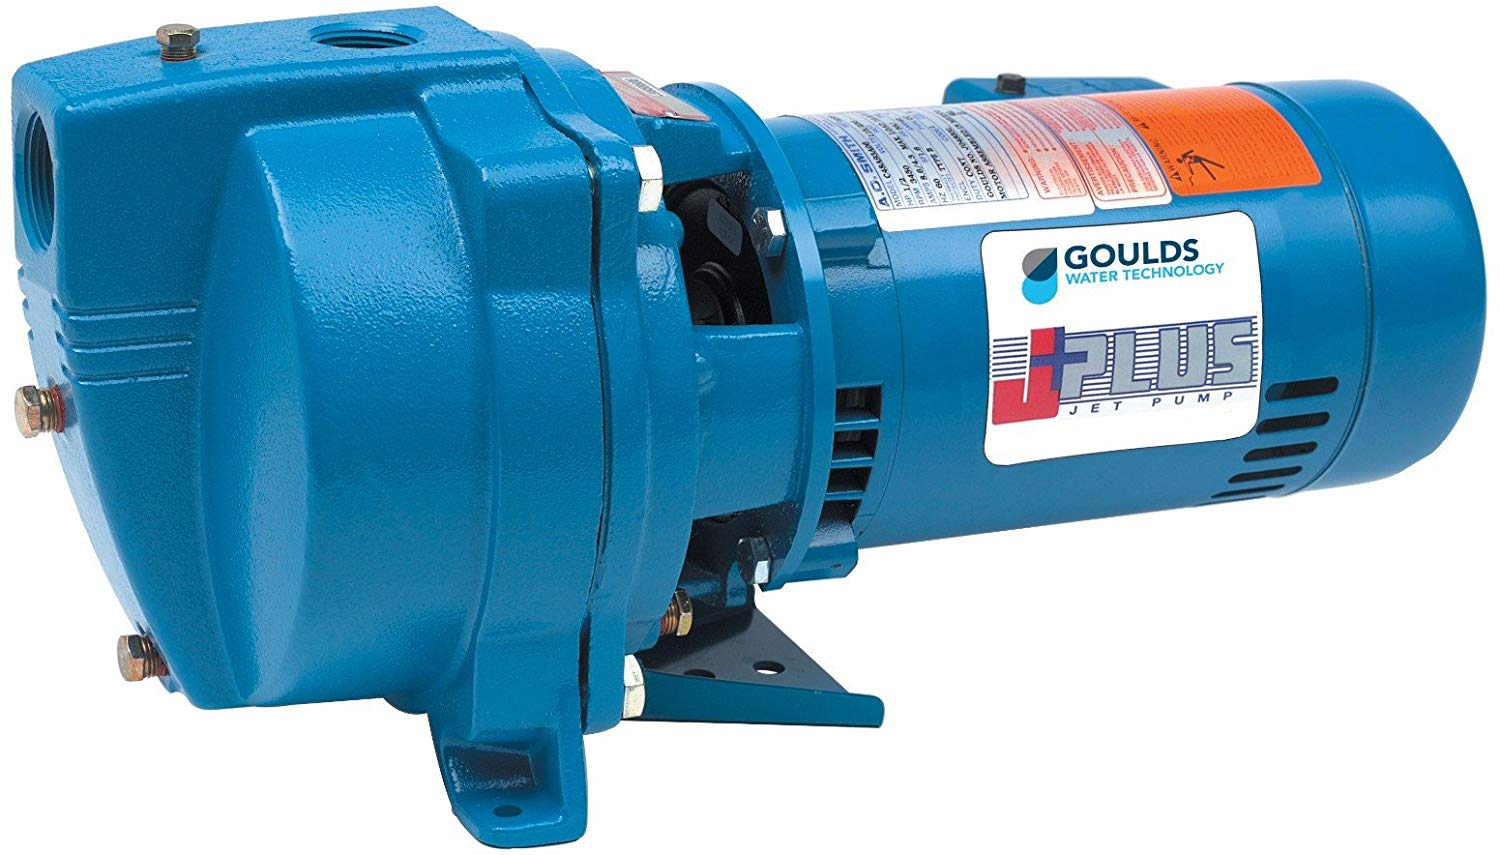 Goulds J10S Shallow Well Jet Pump.